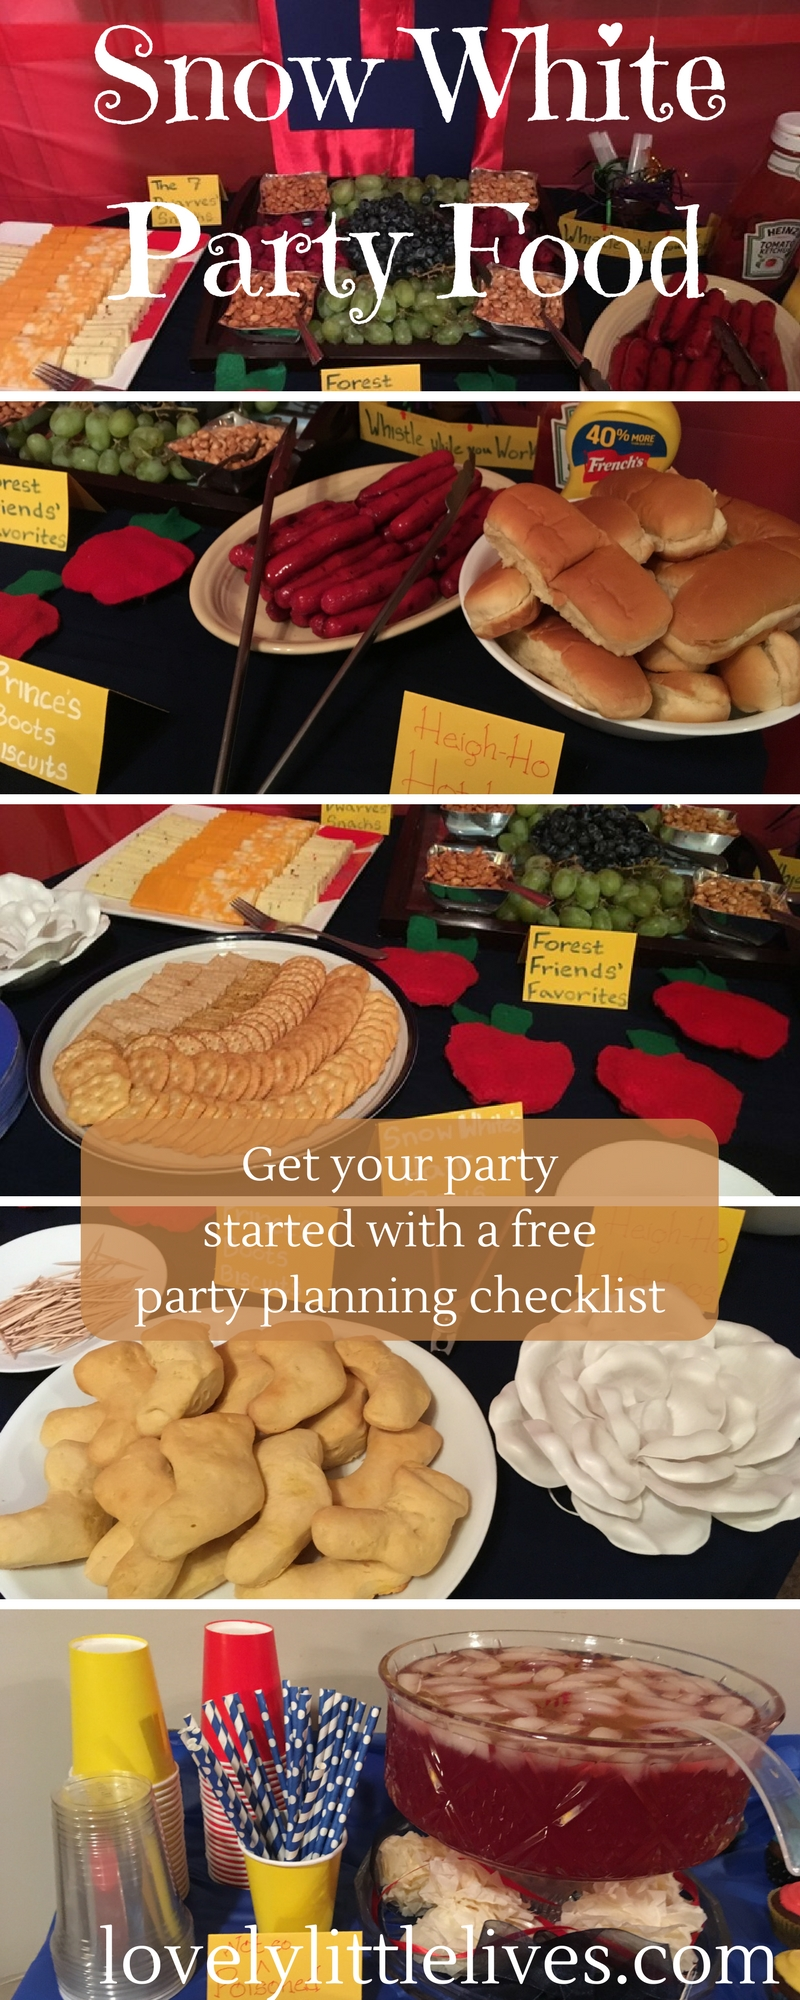 Snow White Party Food. | Snow White Birthday Party | Snow White Party Ideas | Snow White Birthday Party for a four year old | #snowwhite #princessbirthdayparty #snowwhitebirthdayparty